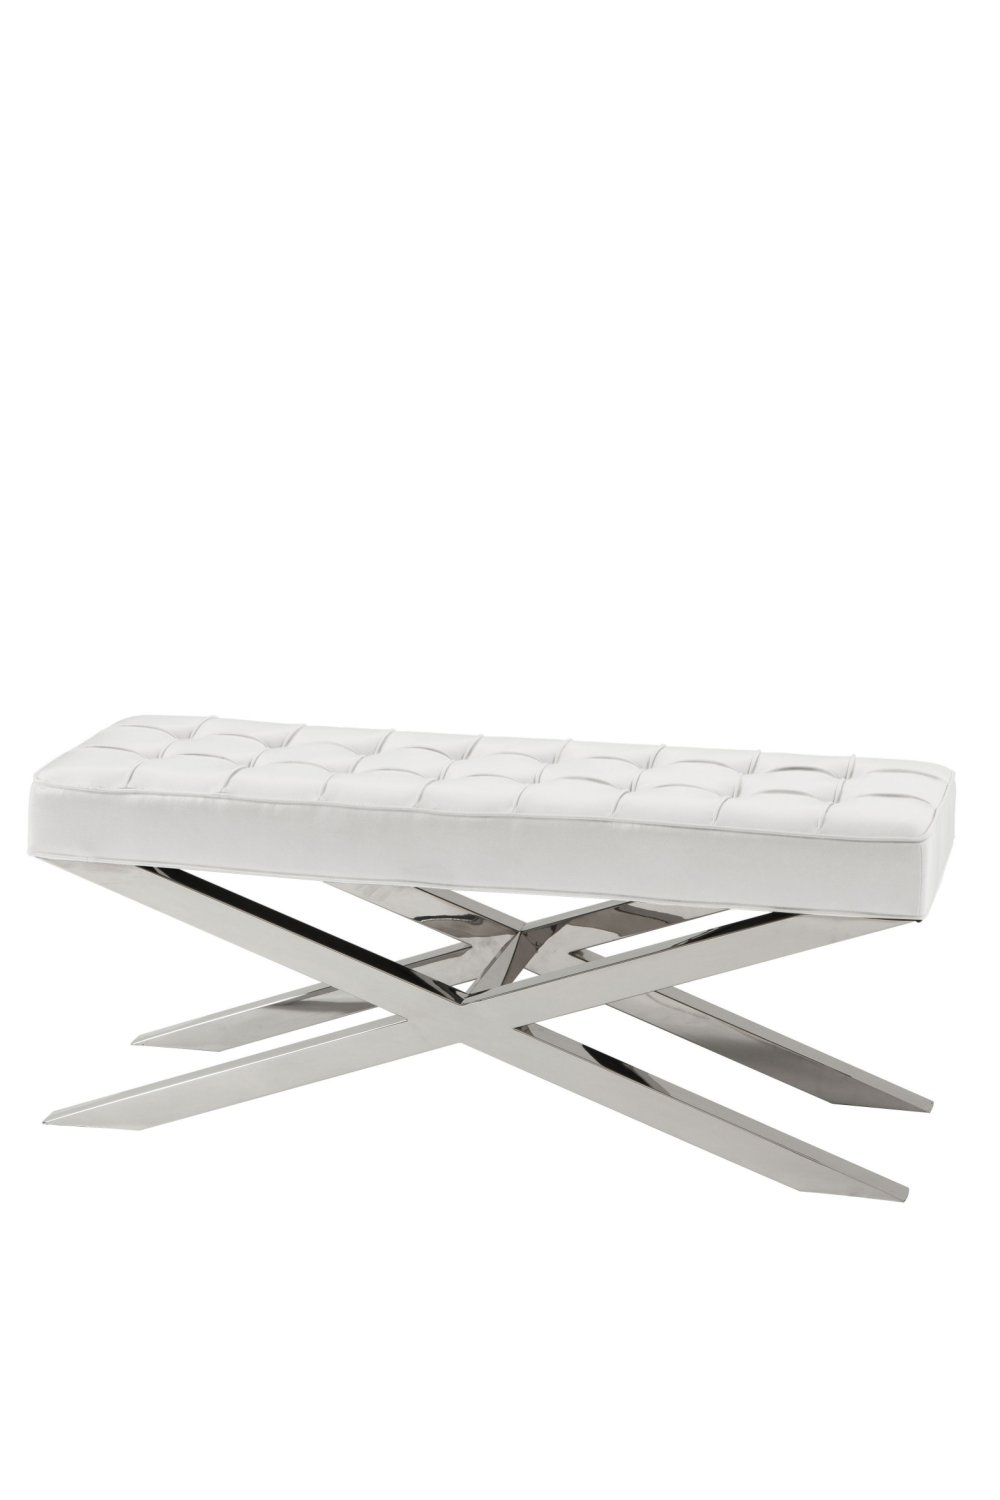 White Leather Bench | Eichholtz Beekman